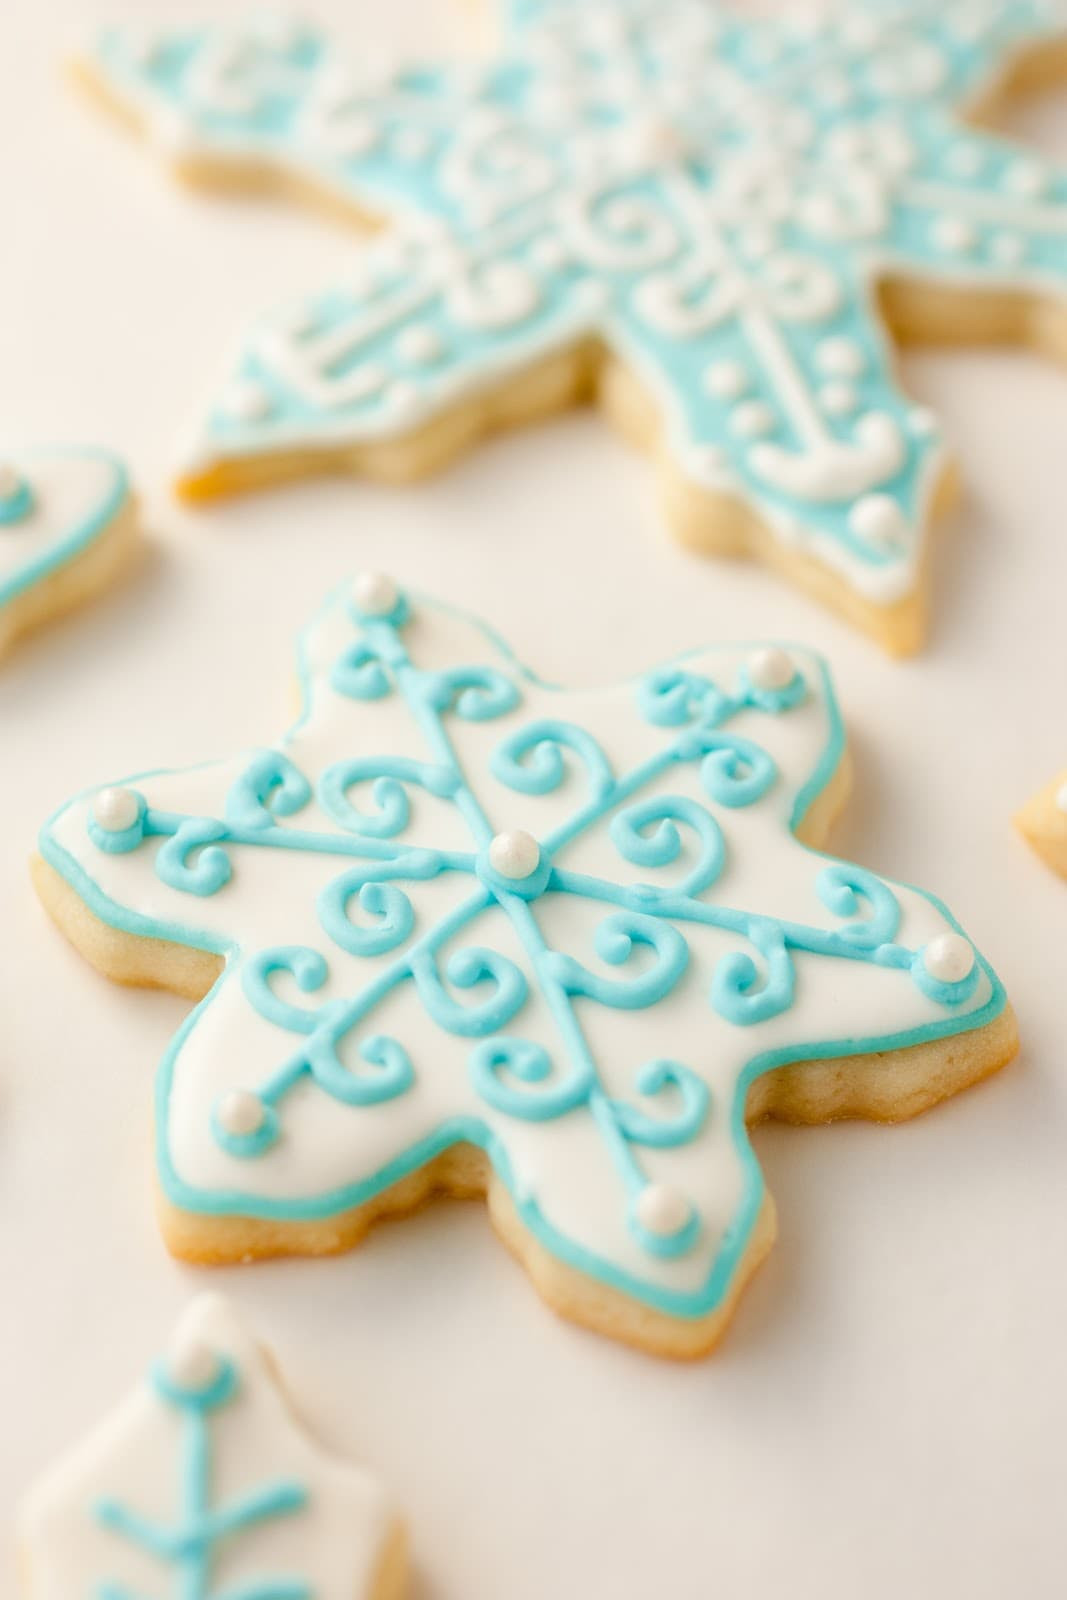 Icing Recipe For Sugar Cookies  Iced Sugar Cookies Cooking Classy